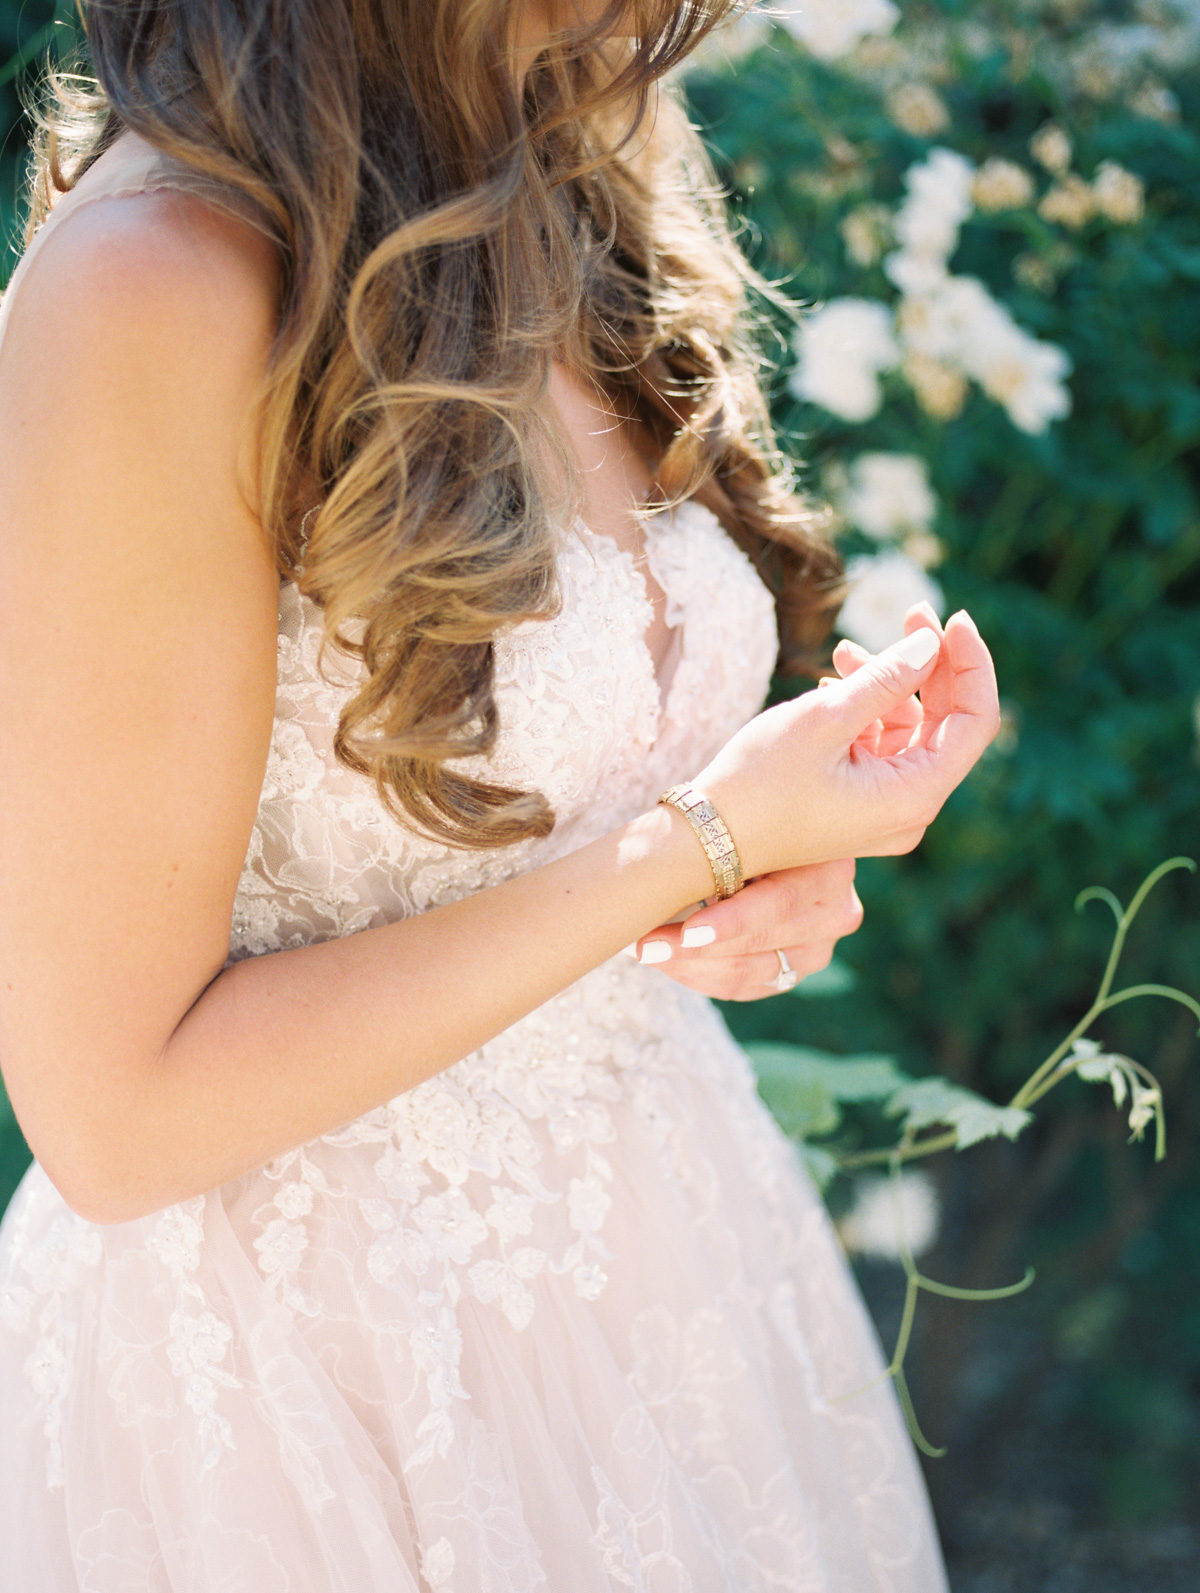 Bride wearing her grandmothers bracelet   Harrison & Jocelyne's gorgeous Temecula wedding at Wiens Family Cellars captured by Betsy & John Photography